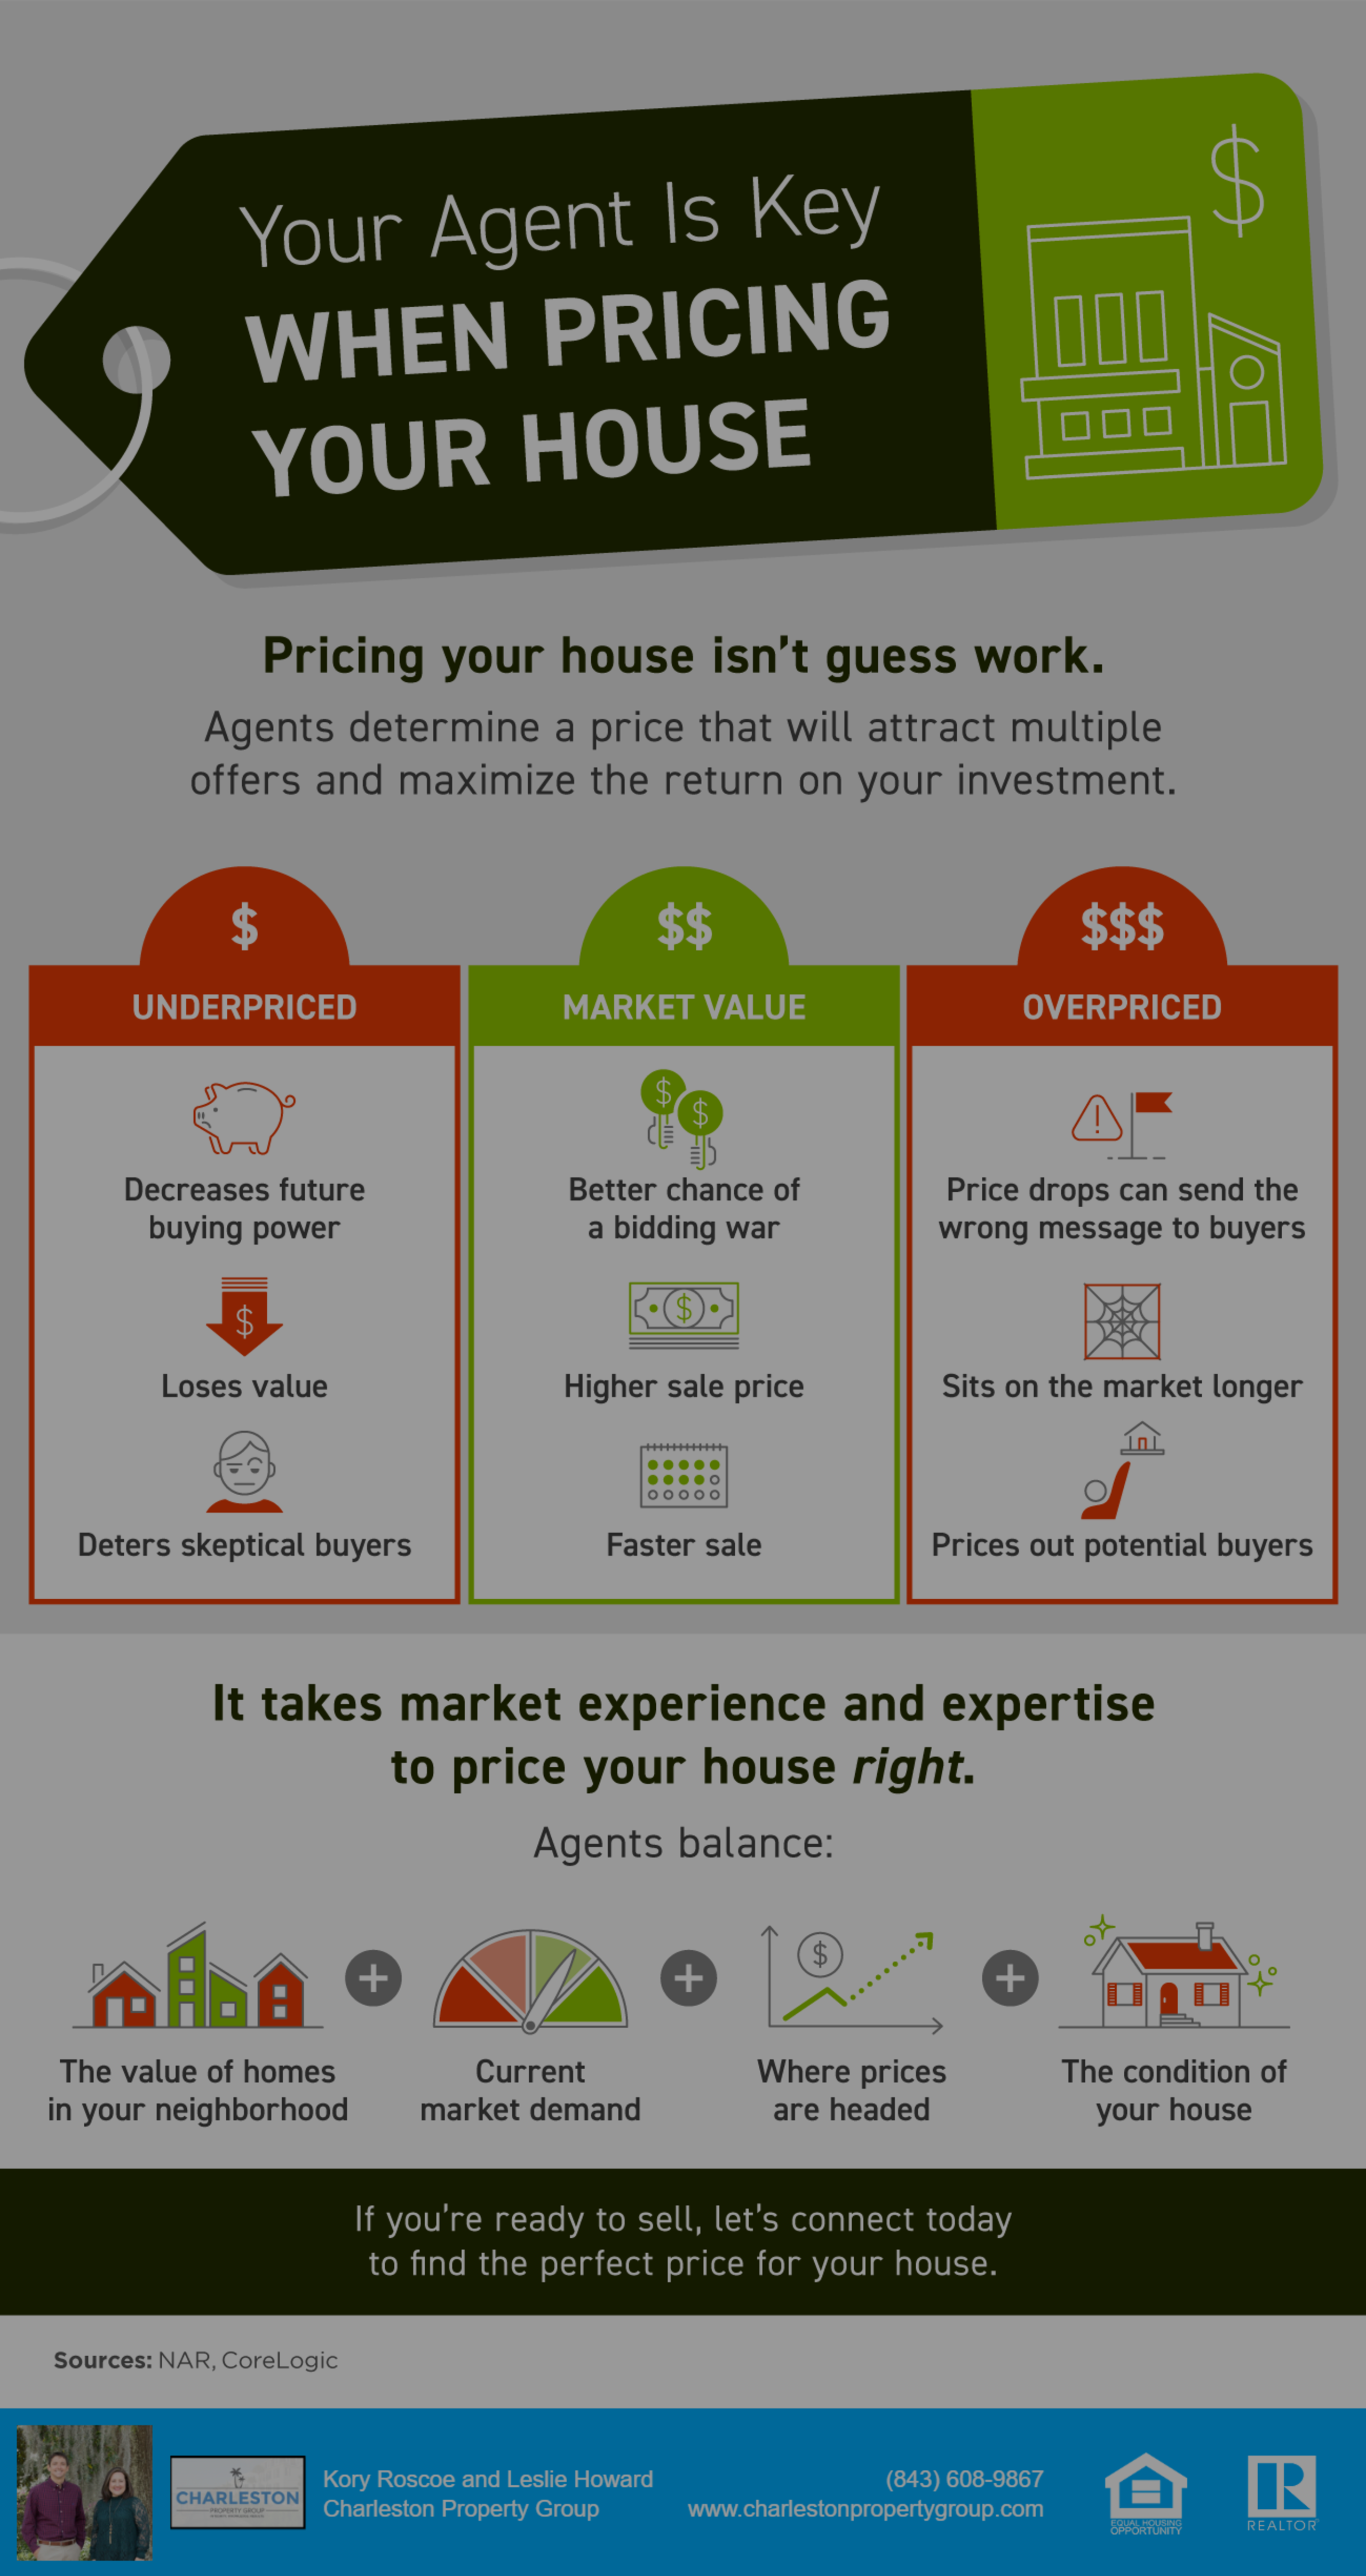 Your Agent Is Key When Pricing Your House in Charleston